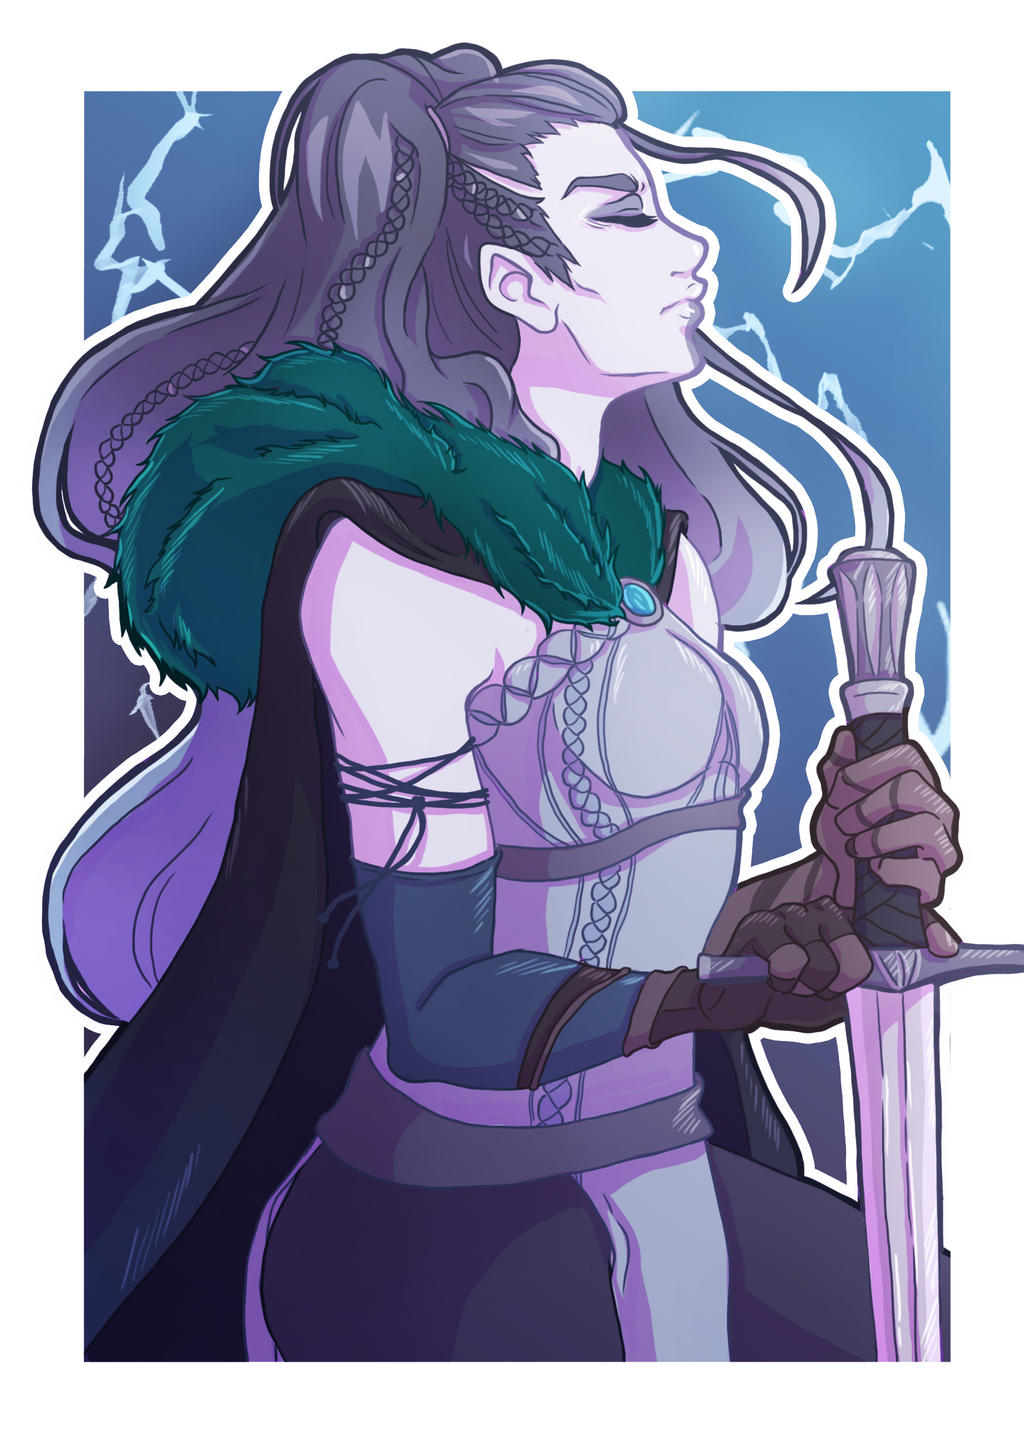 Critical Role Fanart Yasha By Little Cloe On Deviantart Discussionno spoilers critical role is better that anything on tv right now. critical role fanart yasha by little